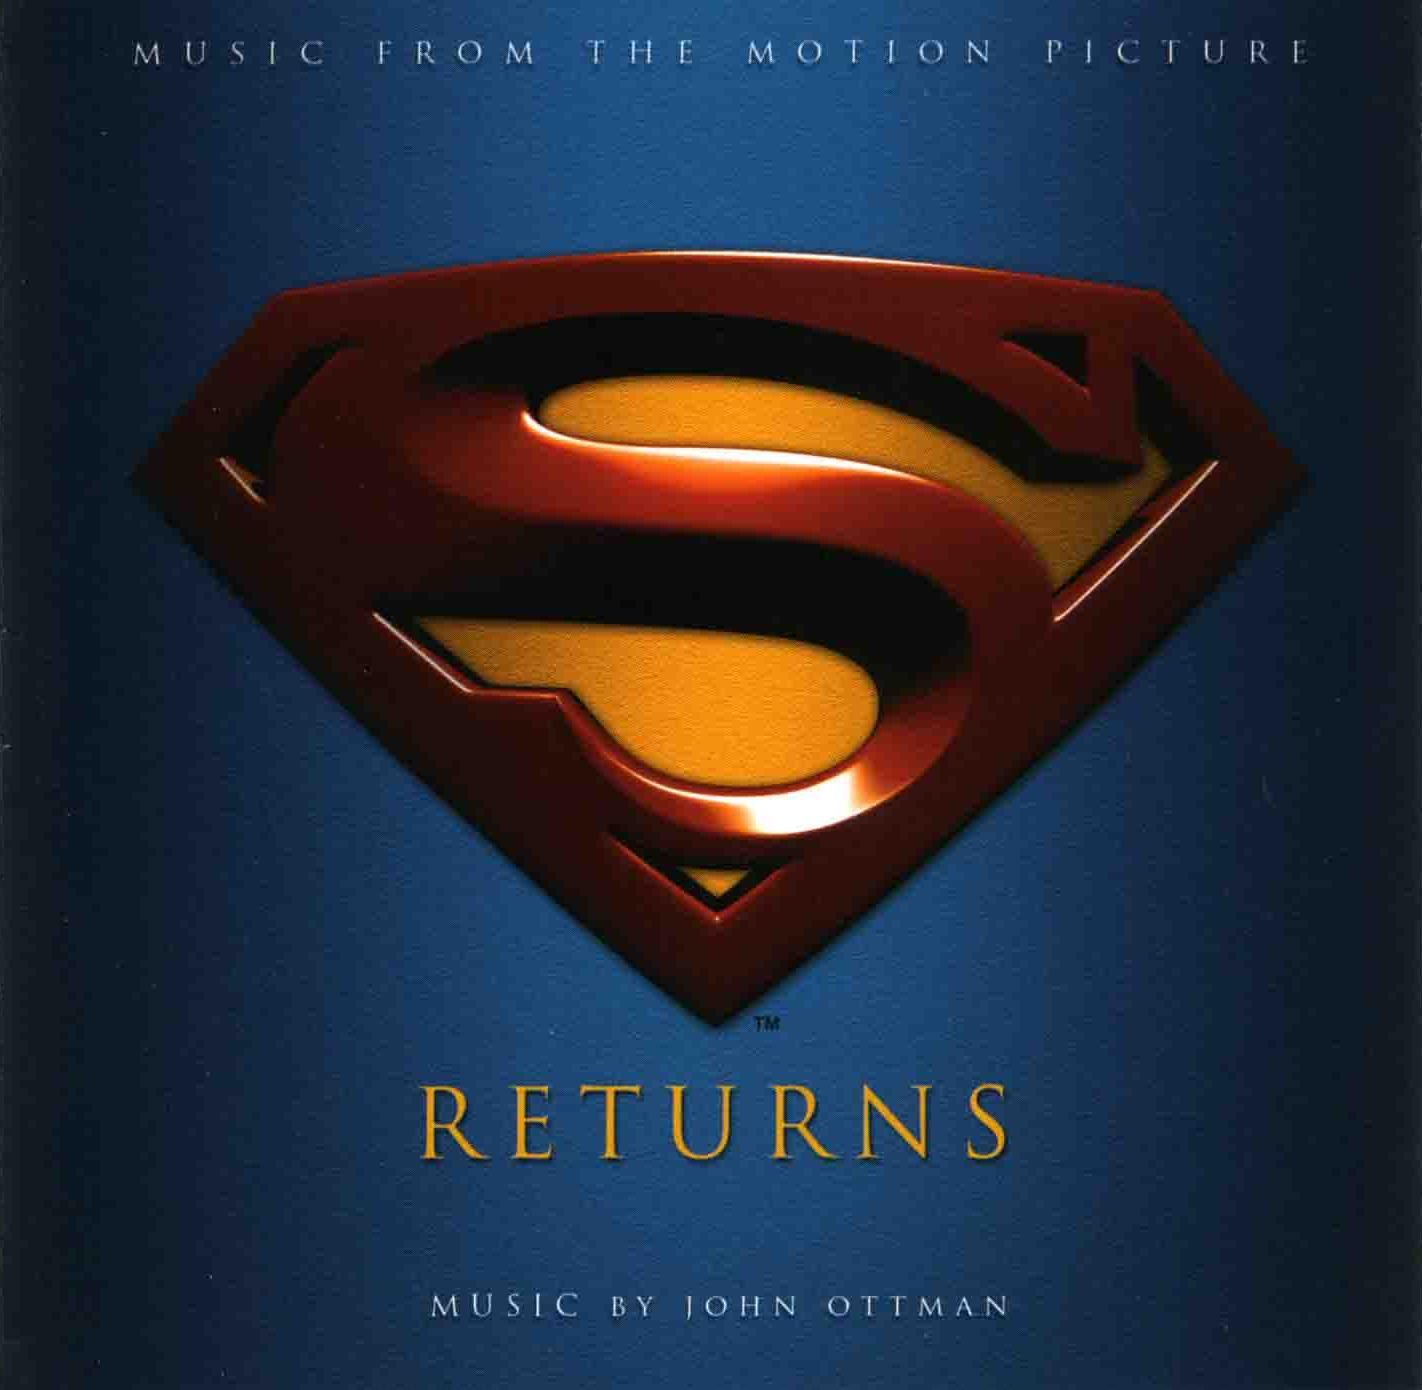 http://1.bp.blogspot.com/_5wXI1-YmtQs/S9EZA0dCvjI/AAAAAAAAAIs/E4EjnKMaMAo/s1600/MovieSoundtrackCollections-010-SupermanReturns.jpg